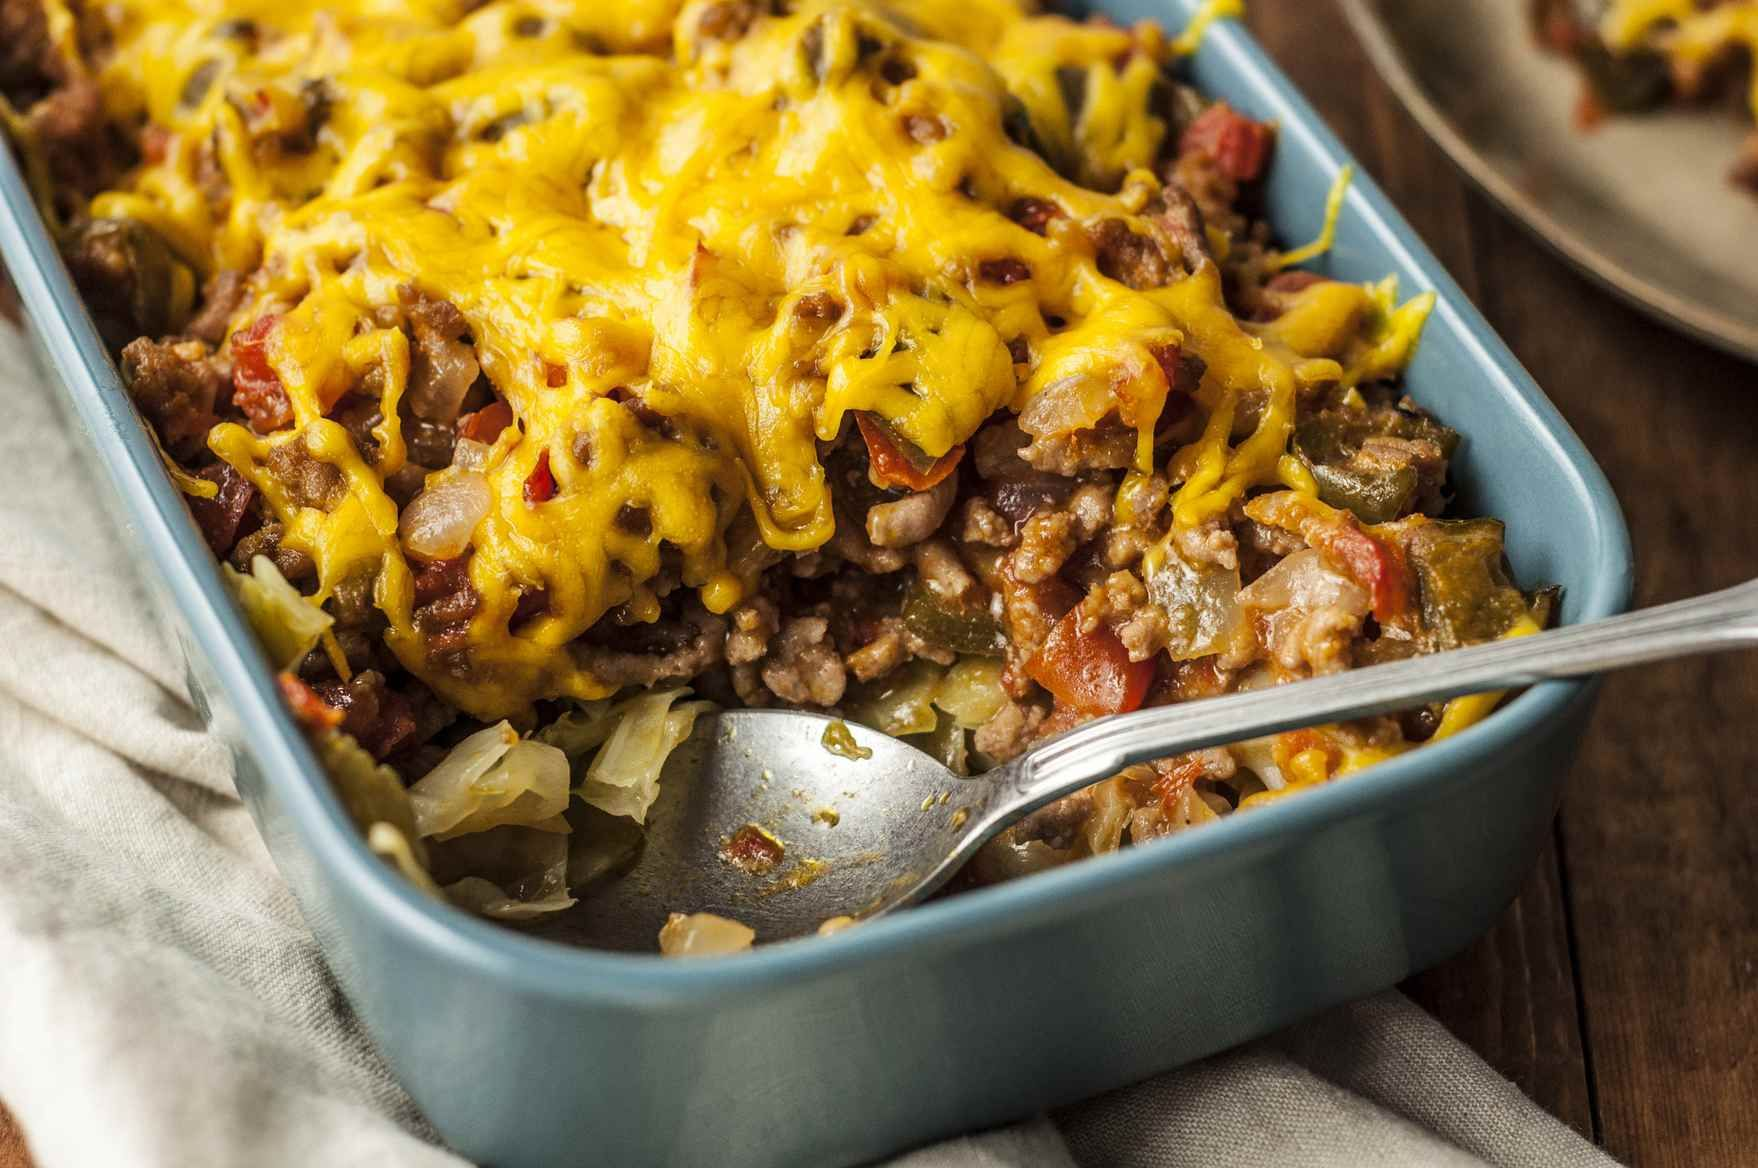 This Cabbage And Ground Beef Casserole Will Be An Instant Hit Recipe Cabbage Recipes Casserole Recipes Ground Beef